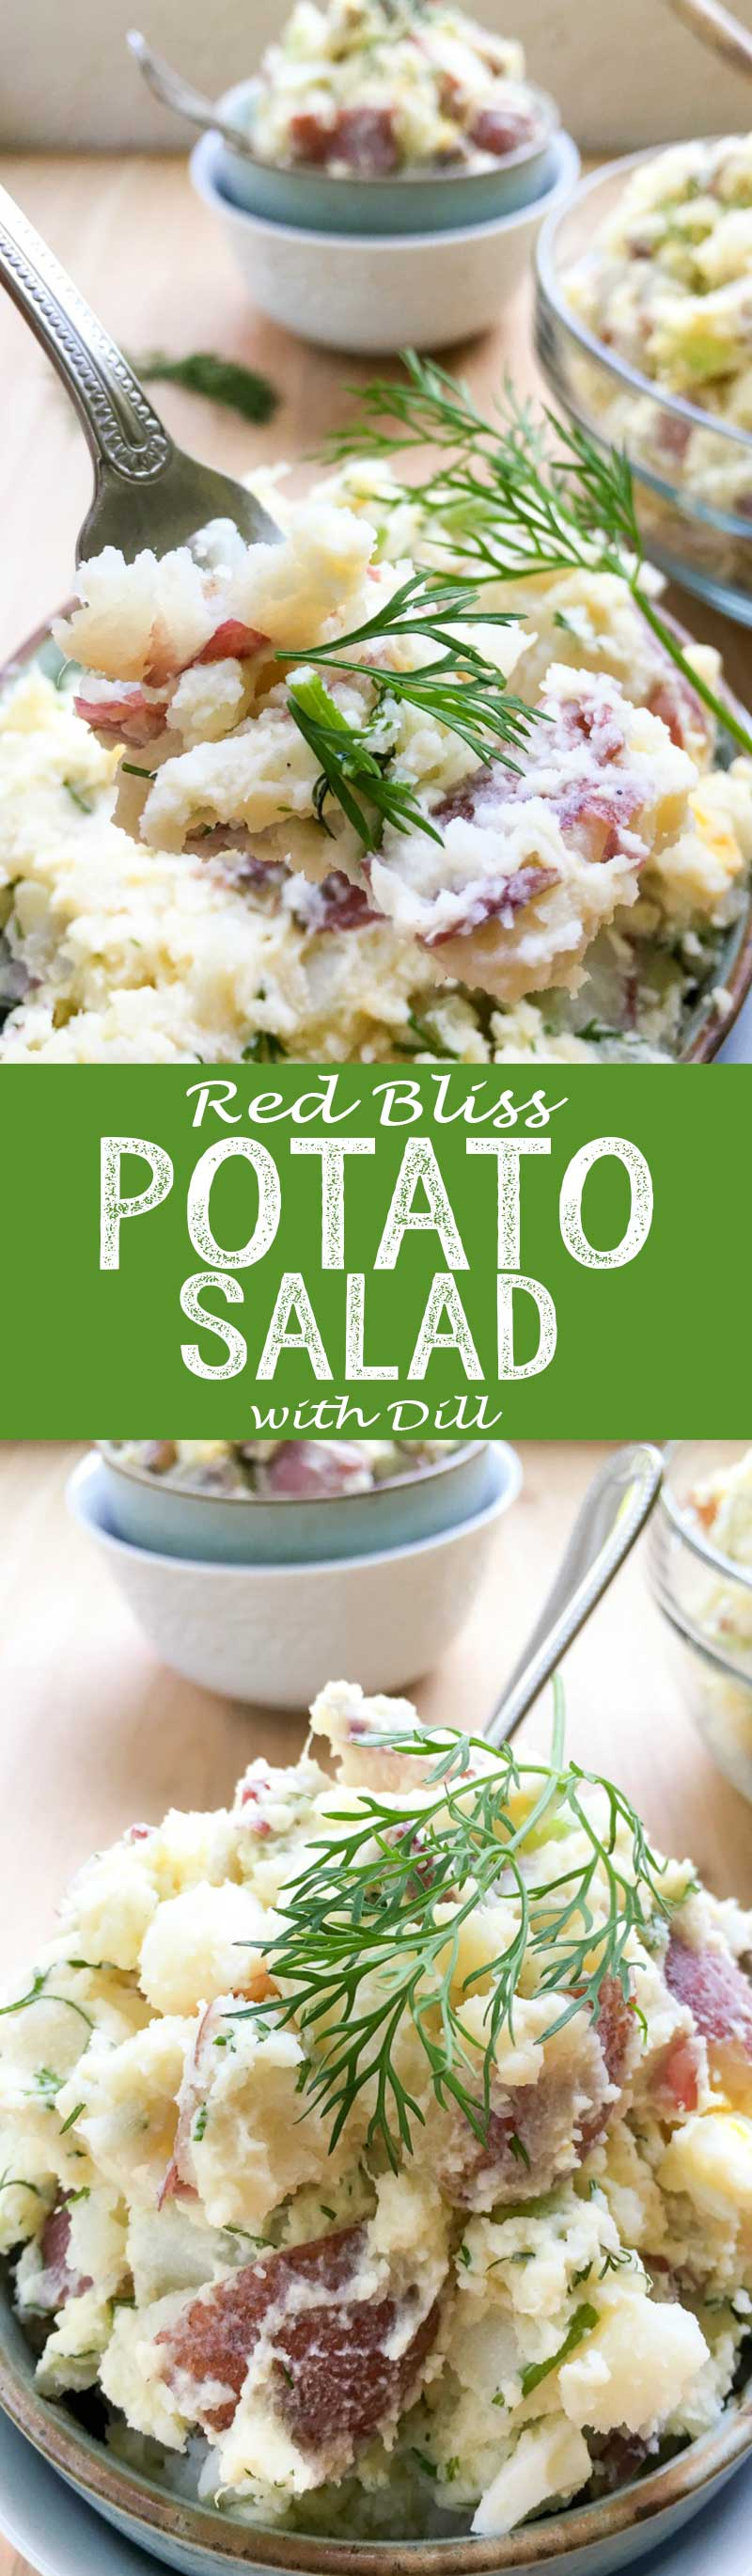 Red Potato Salad Recipe: Crisp celery, onion, Dijon mustard, eggs, and fresh dill gives it a satisfying crunch and flavor and enough to feed a hungry crowd.